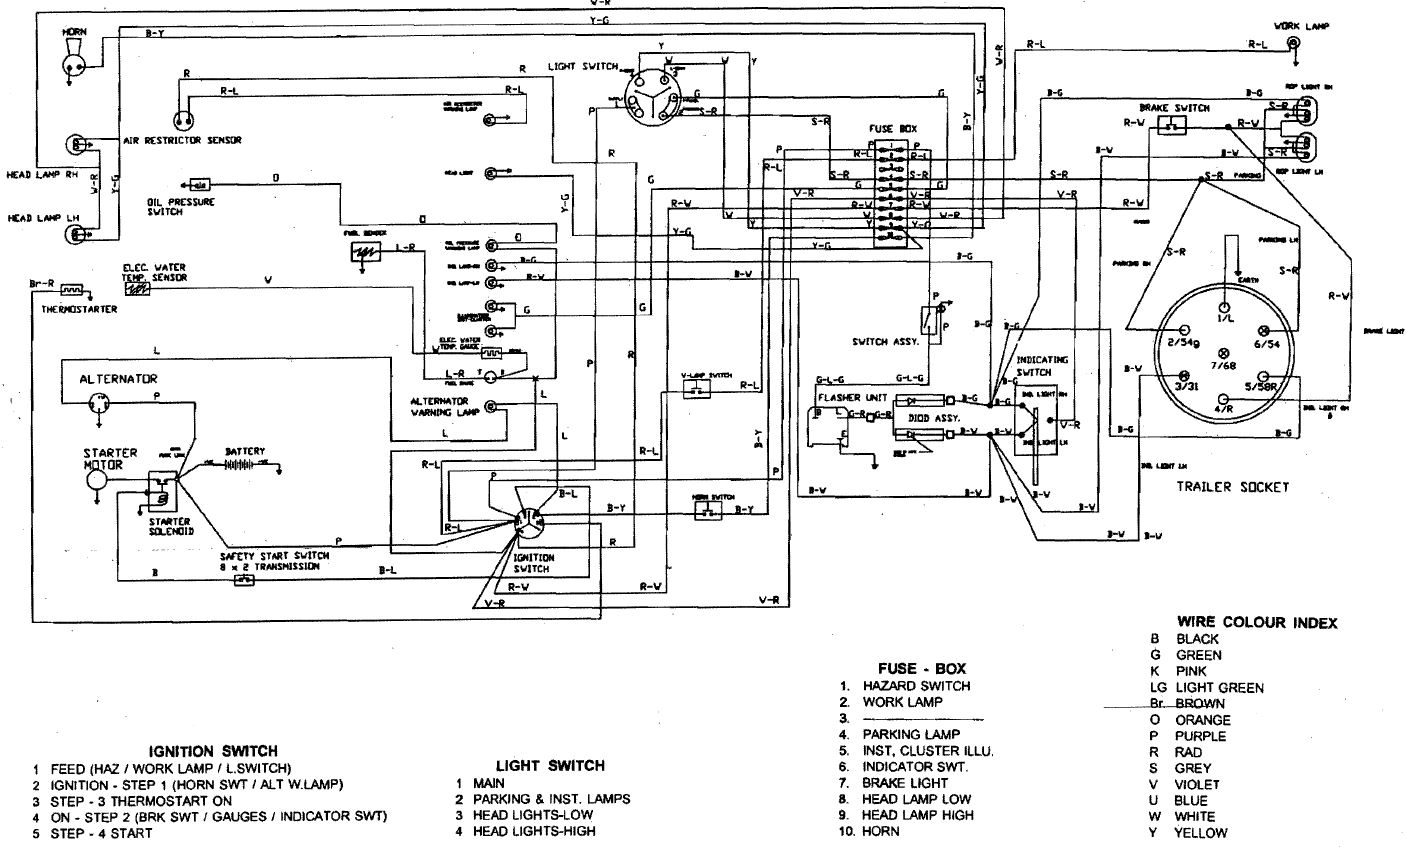 john deere l120 pto clutch wiring diagram  john  free engine image for user manual download